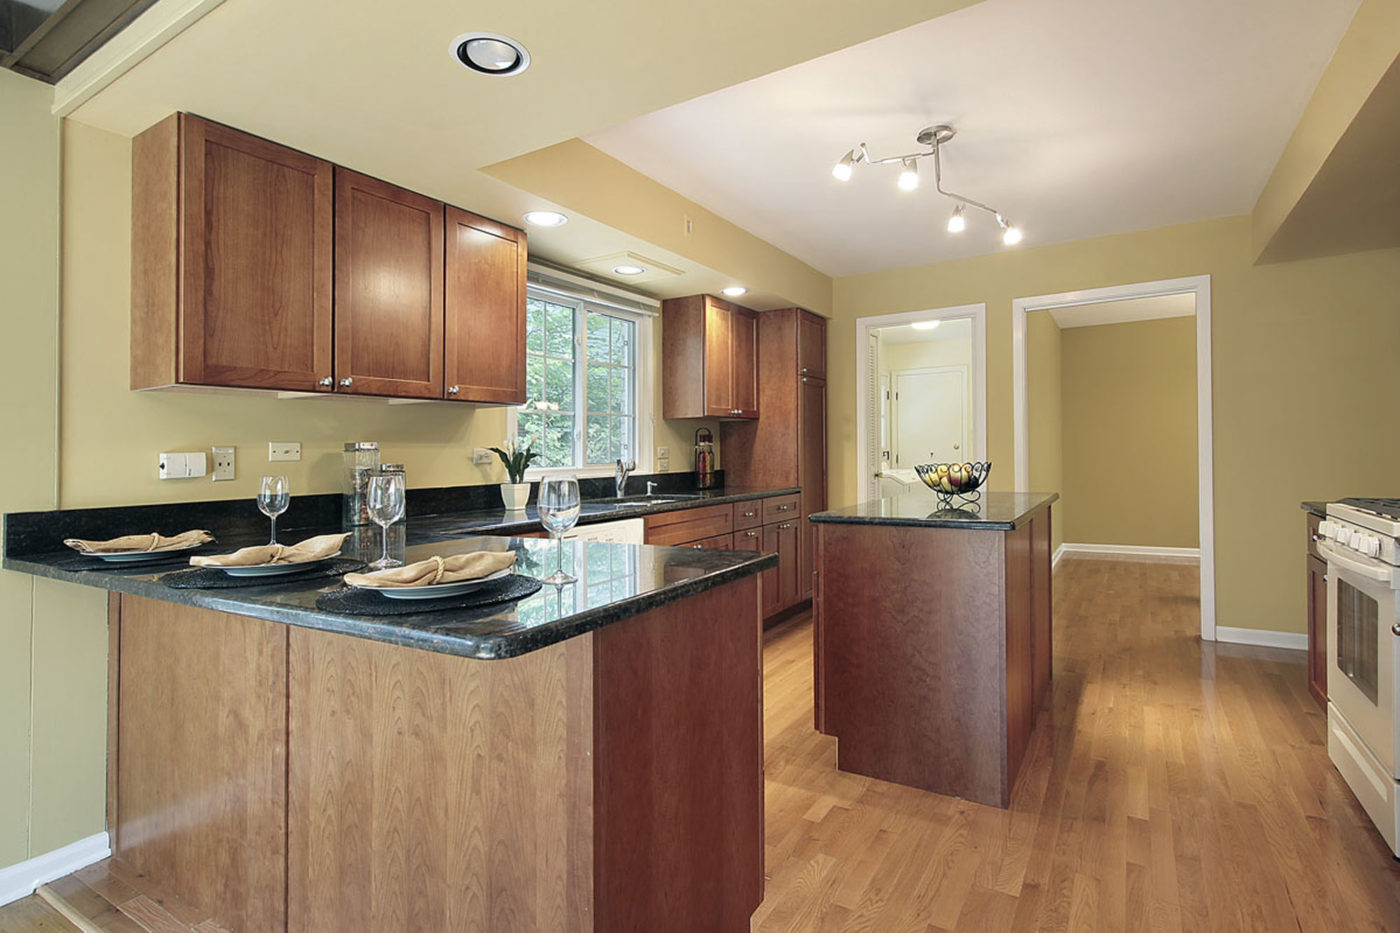 Kitchen Remodeled with Granite Countertops